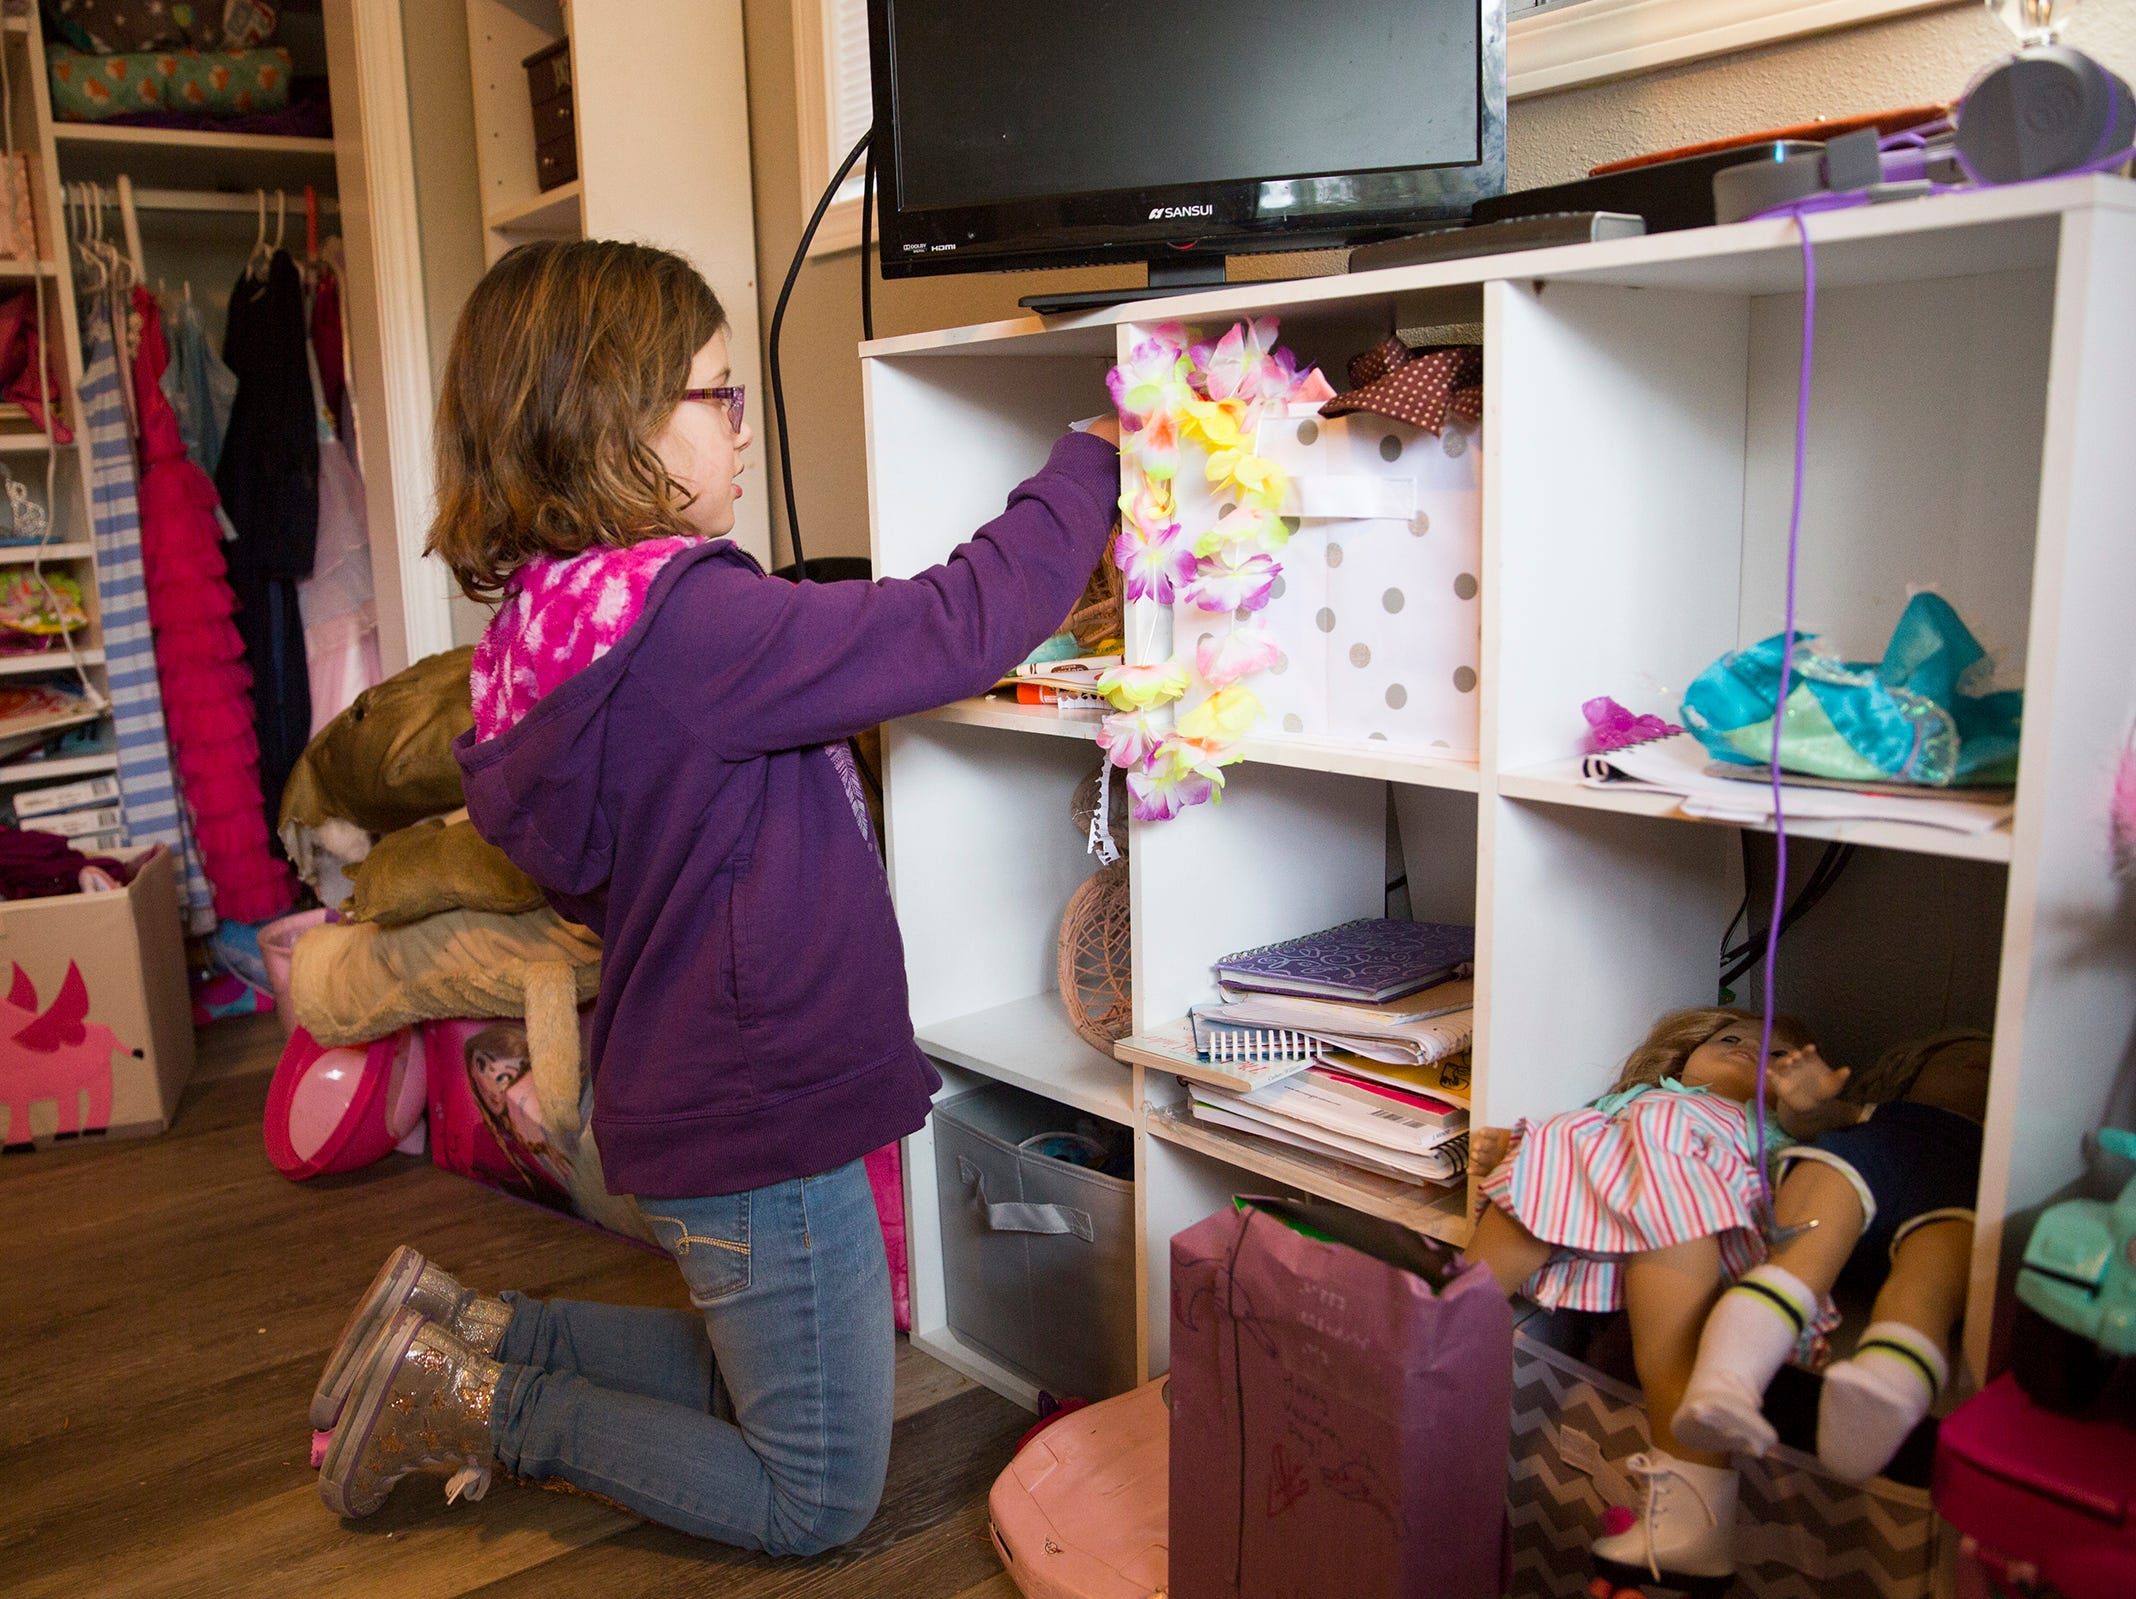 Haley Pollman, 9, pulls out her favorite toys and belongings from around her room at her home in Salem on Saturday, Feb. 23, 2019.